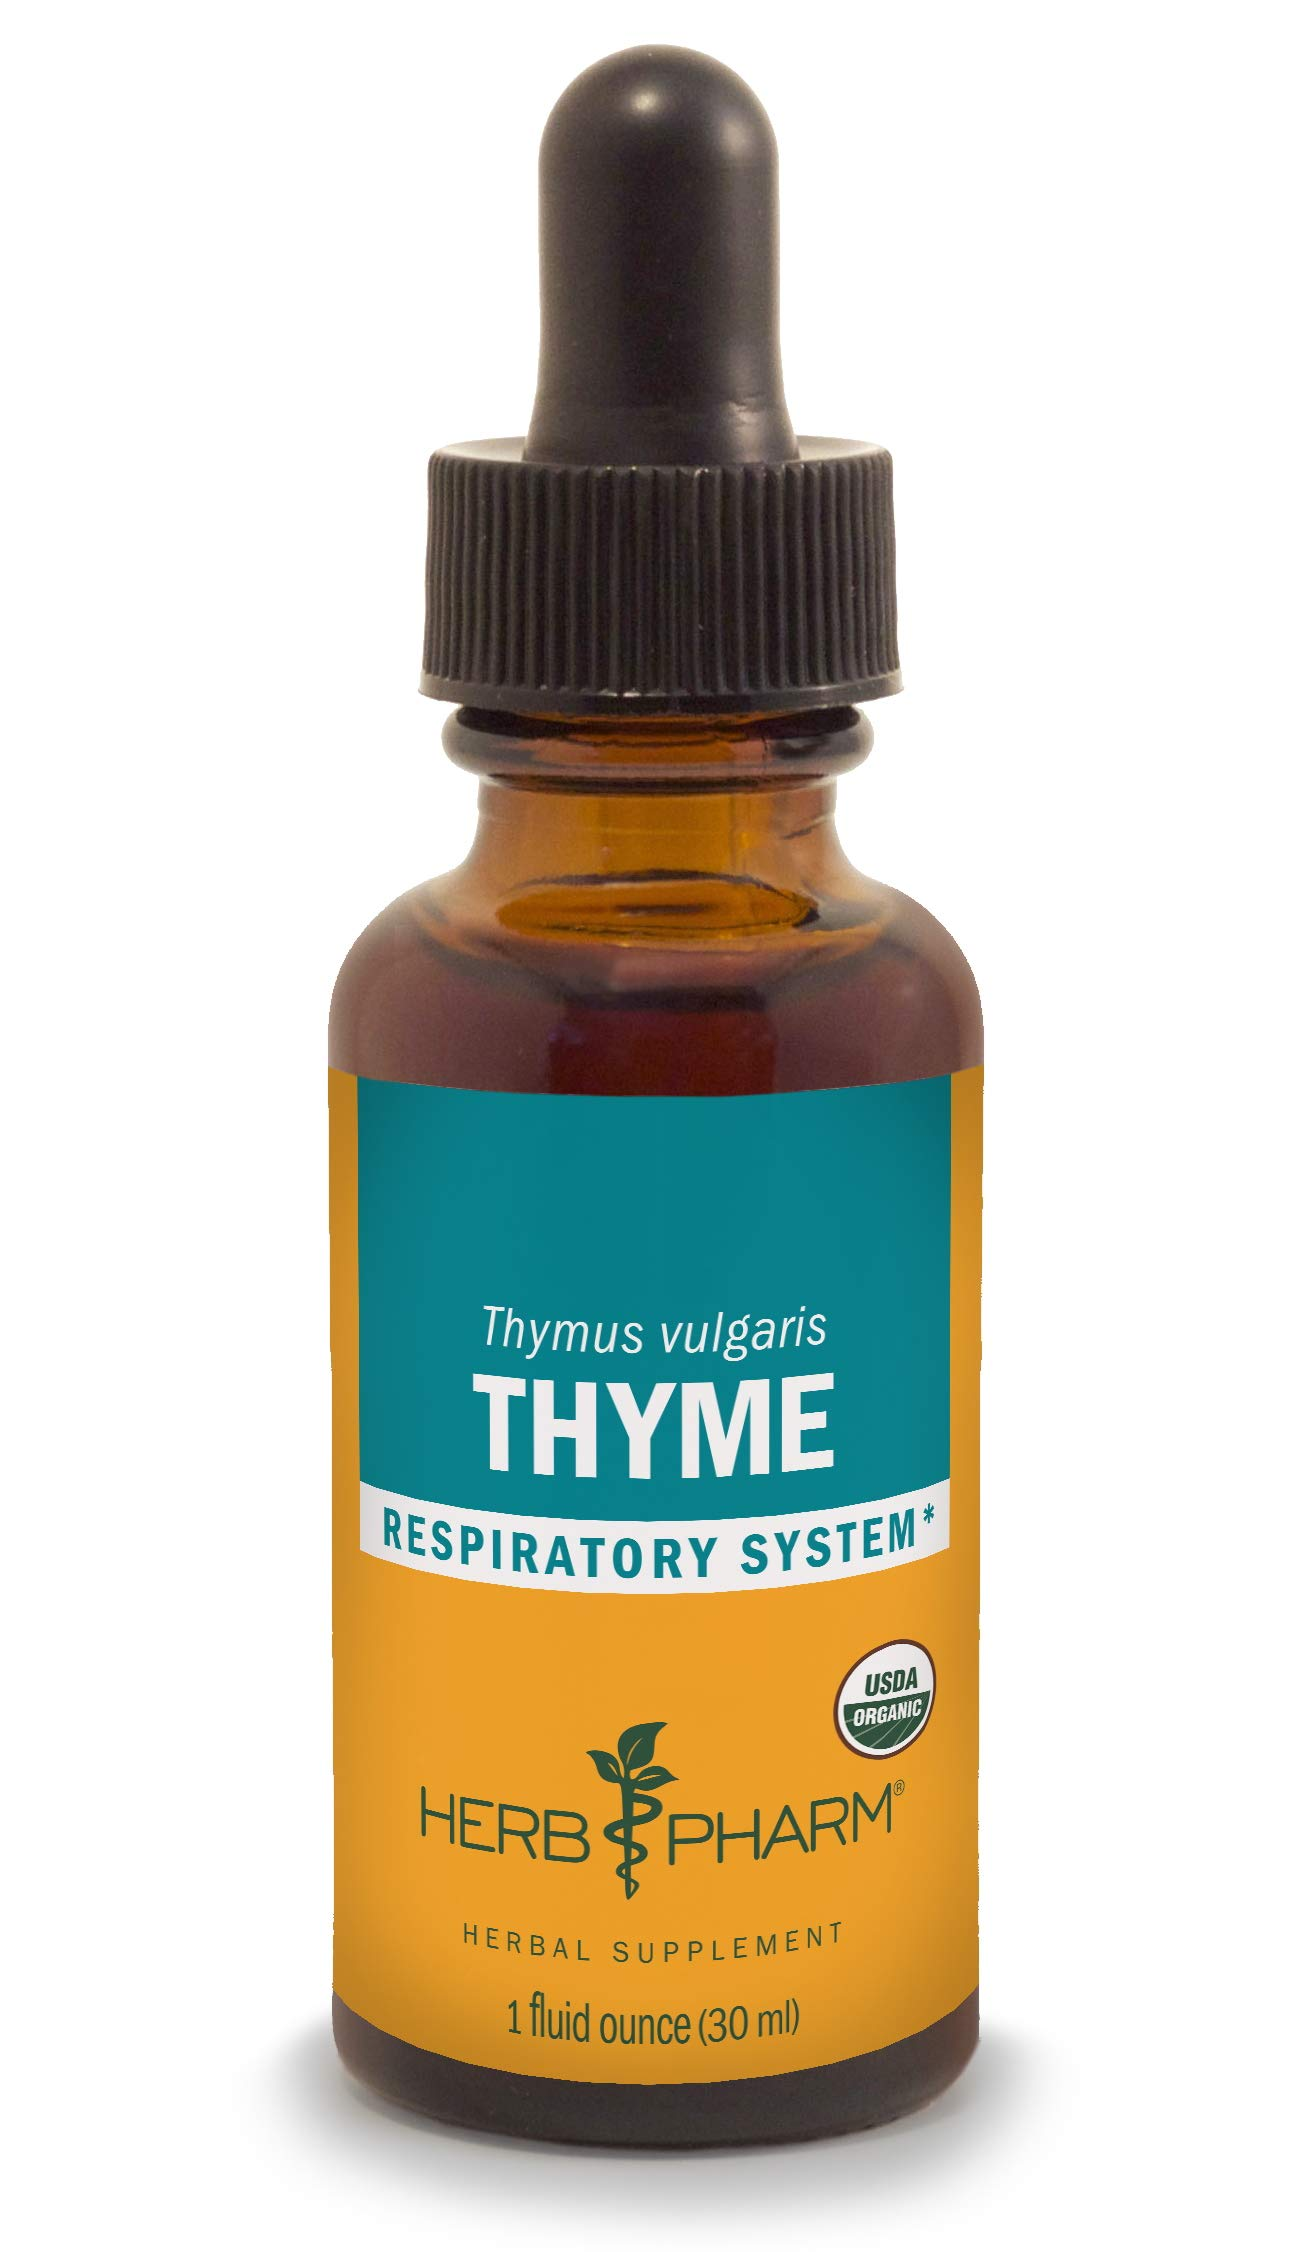 Herb Pharm Certified Organic Thyme Liquid Extract for Respiratory System Support - 1 Ounce